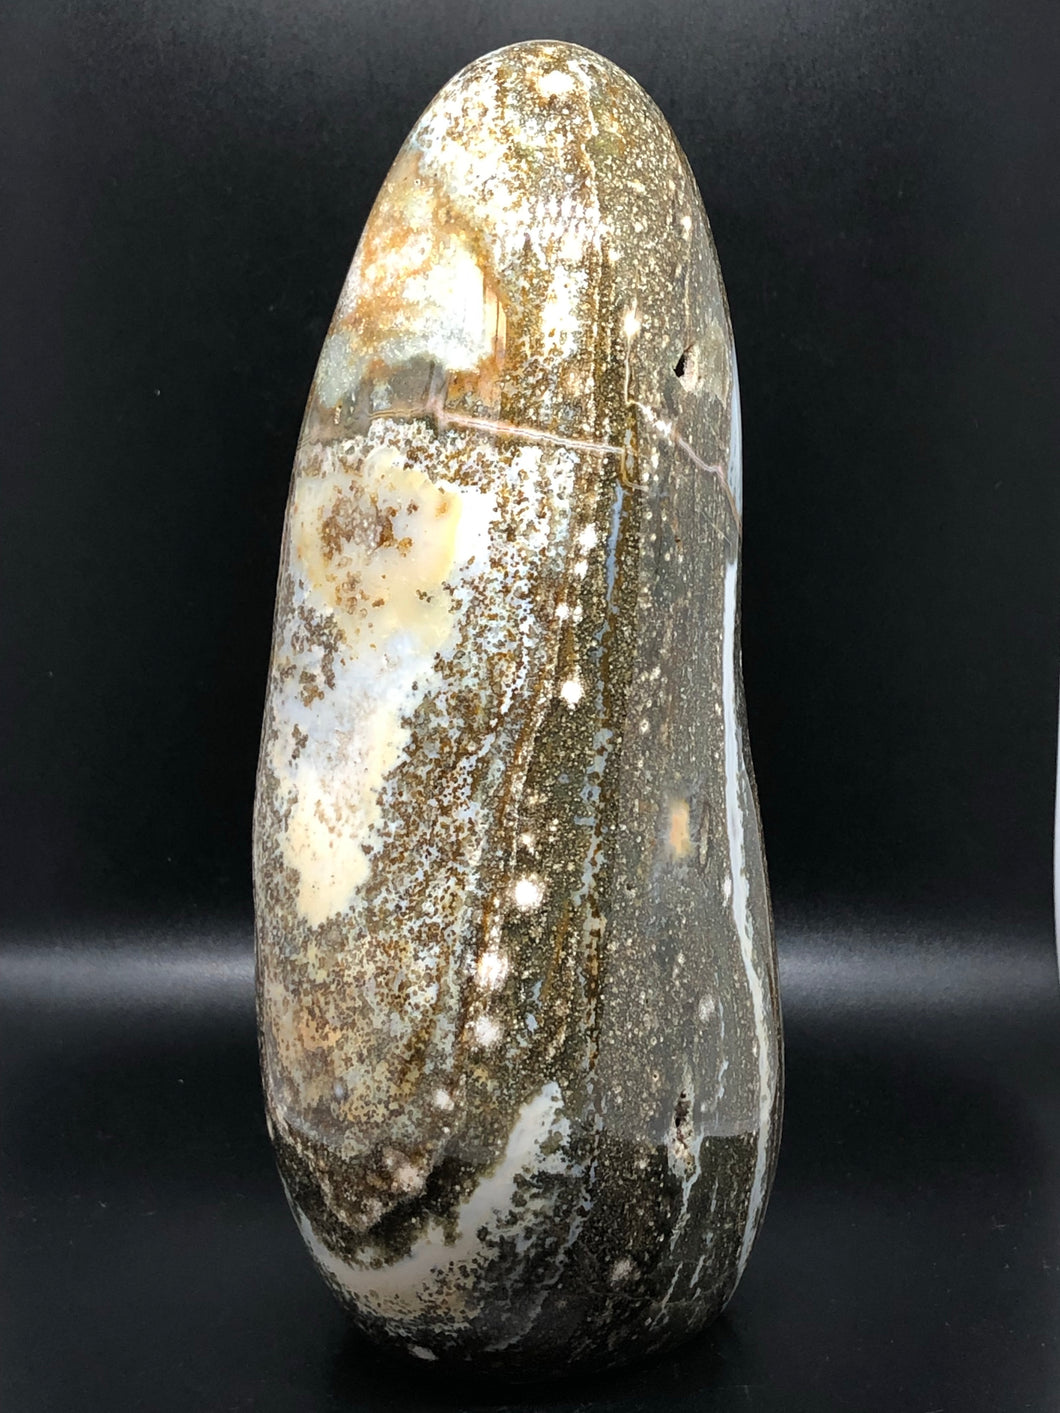 Ocean jasper | Atlantis Stone ~ Raising Vibration, preparing or the new Golden Age